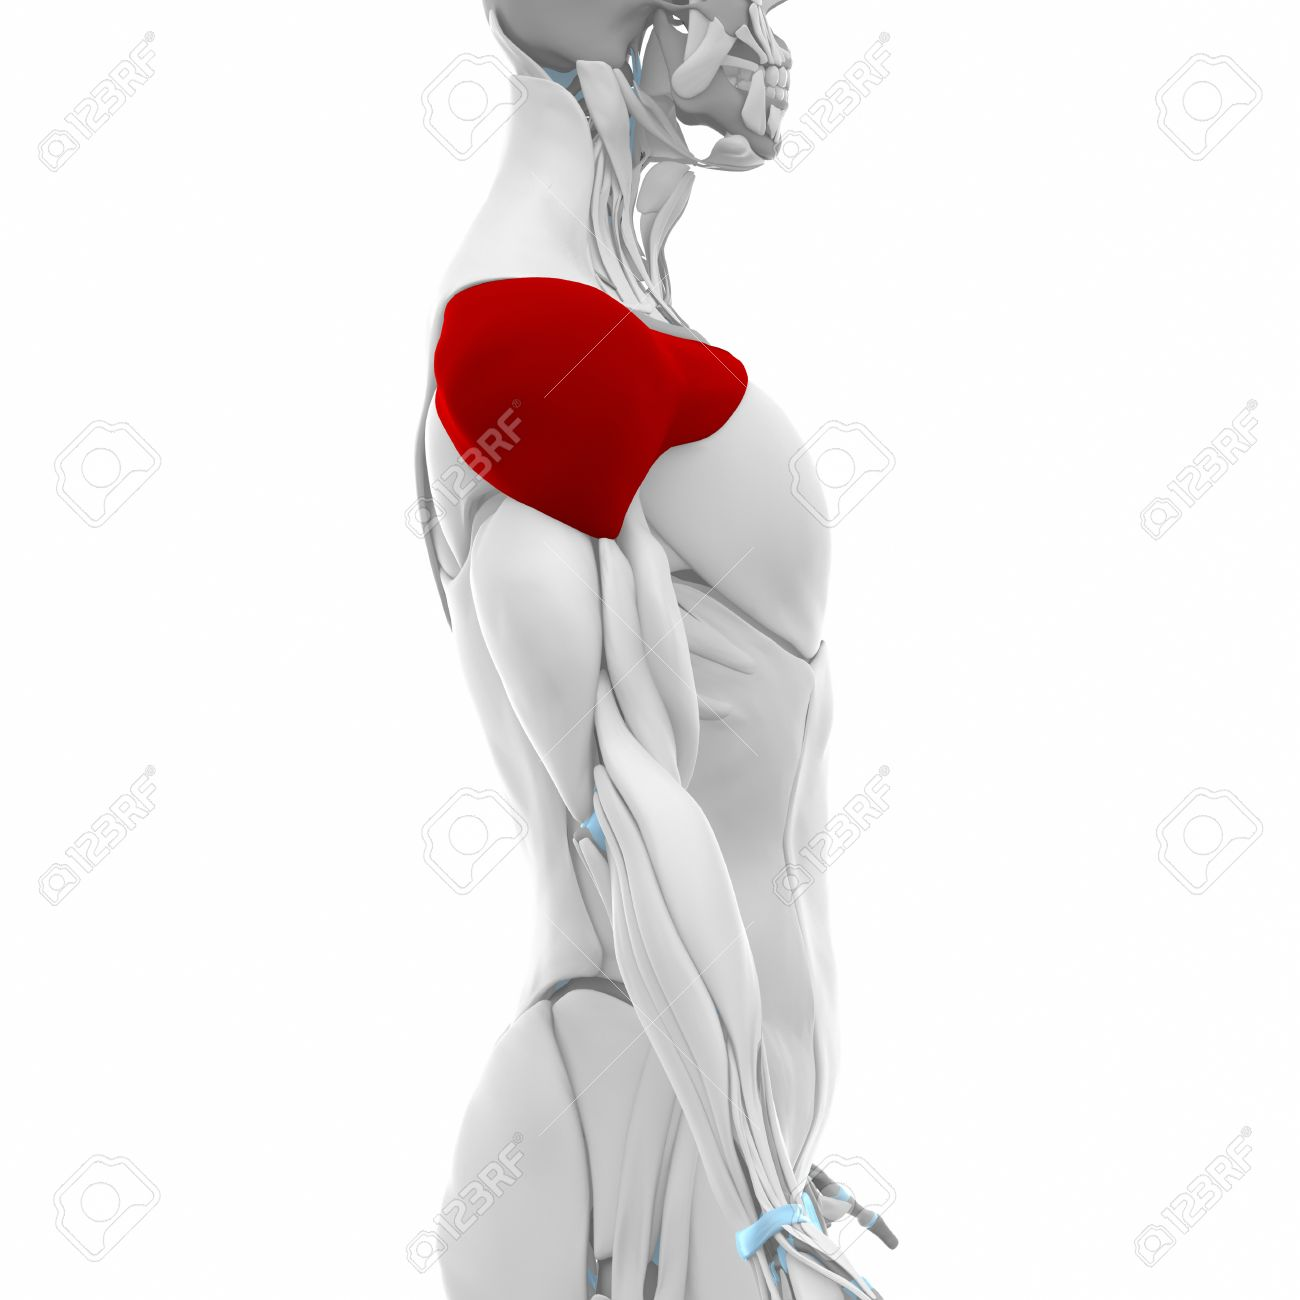 Deltoid - Muscles Anatomy Map Stock Photo, Picture And Royalty Free ...